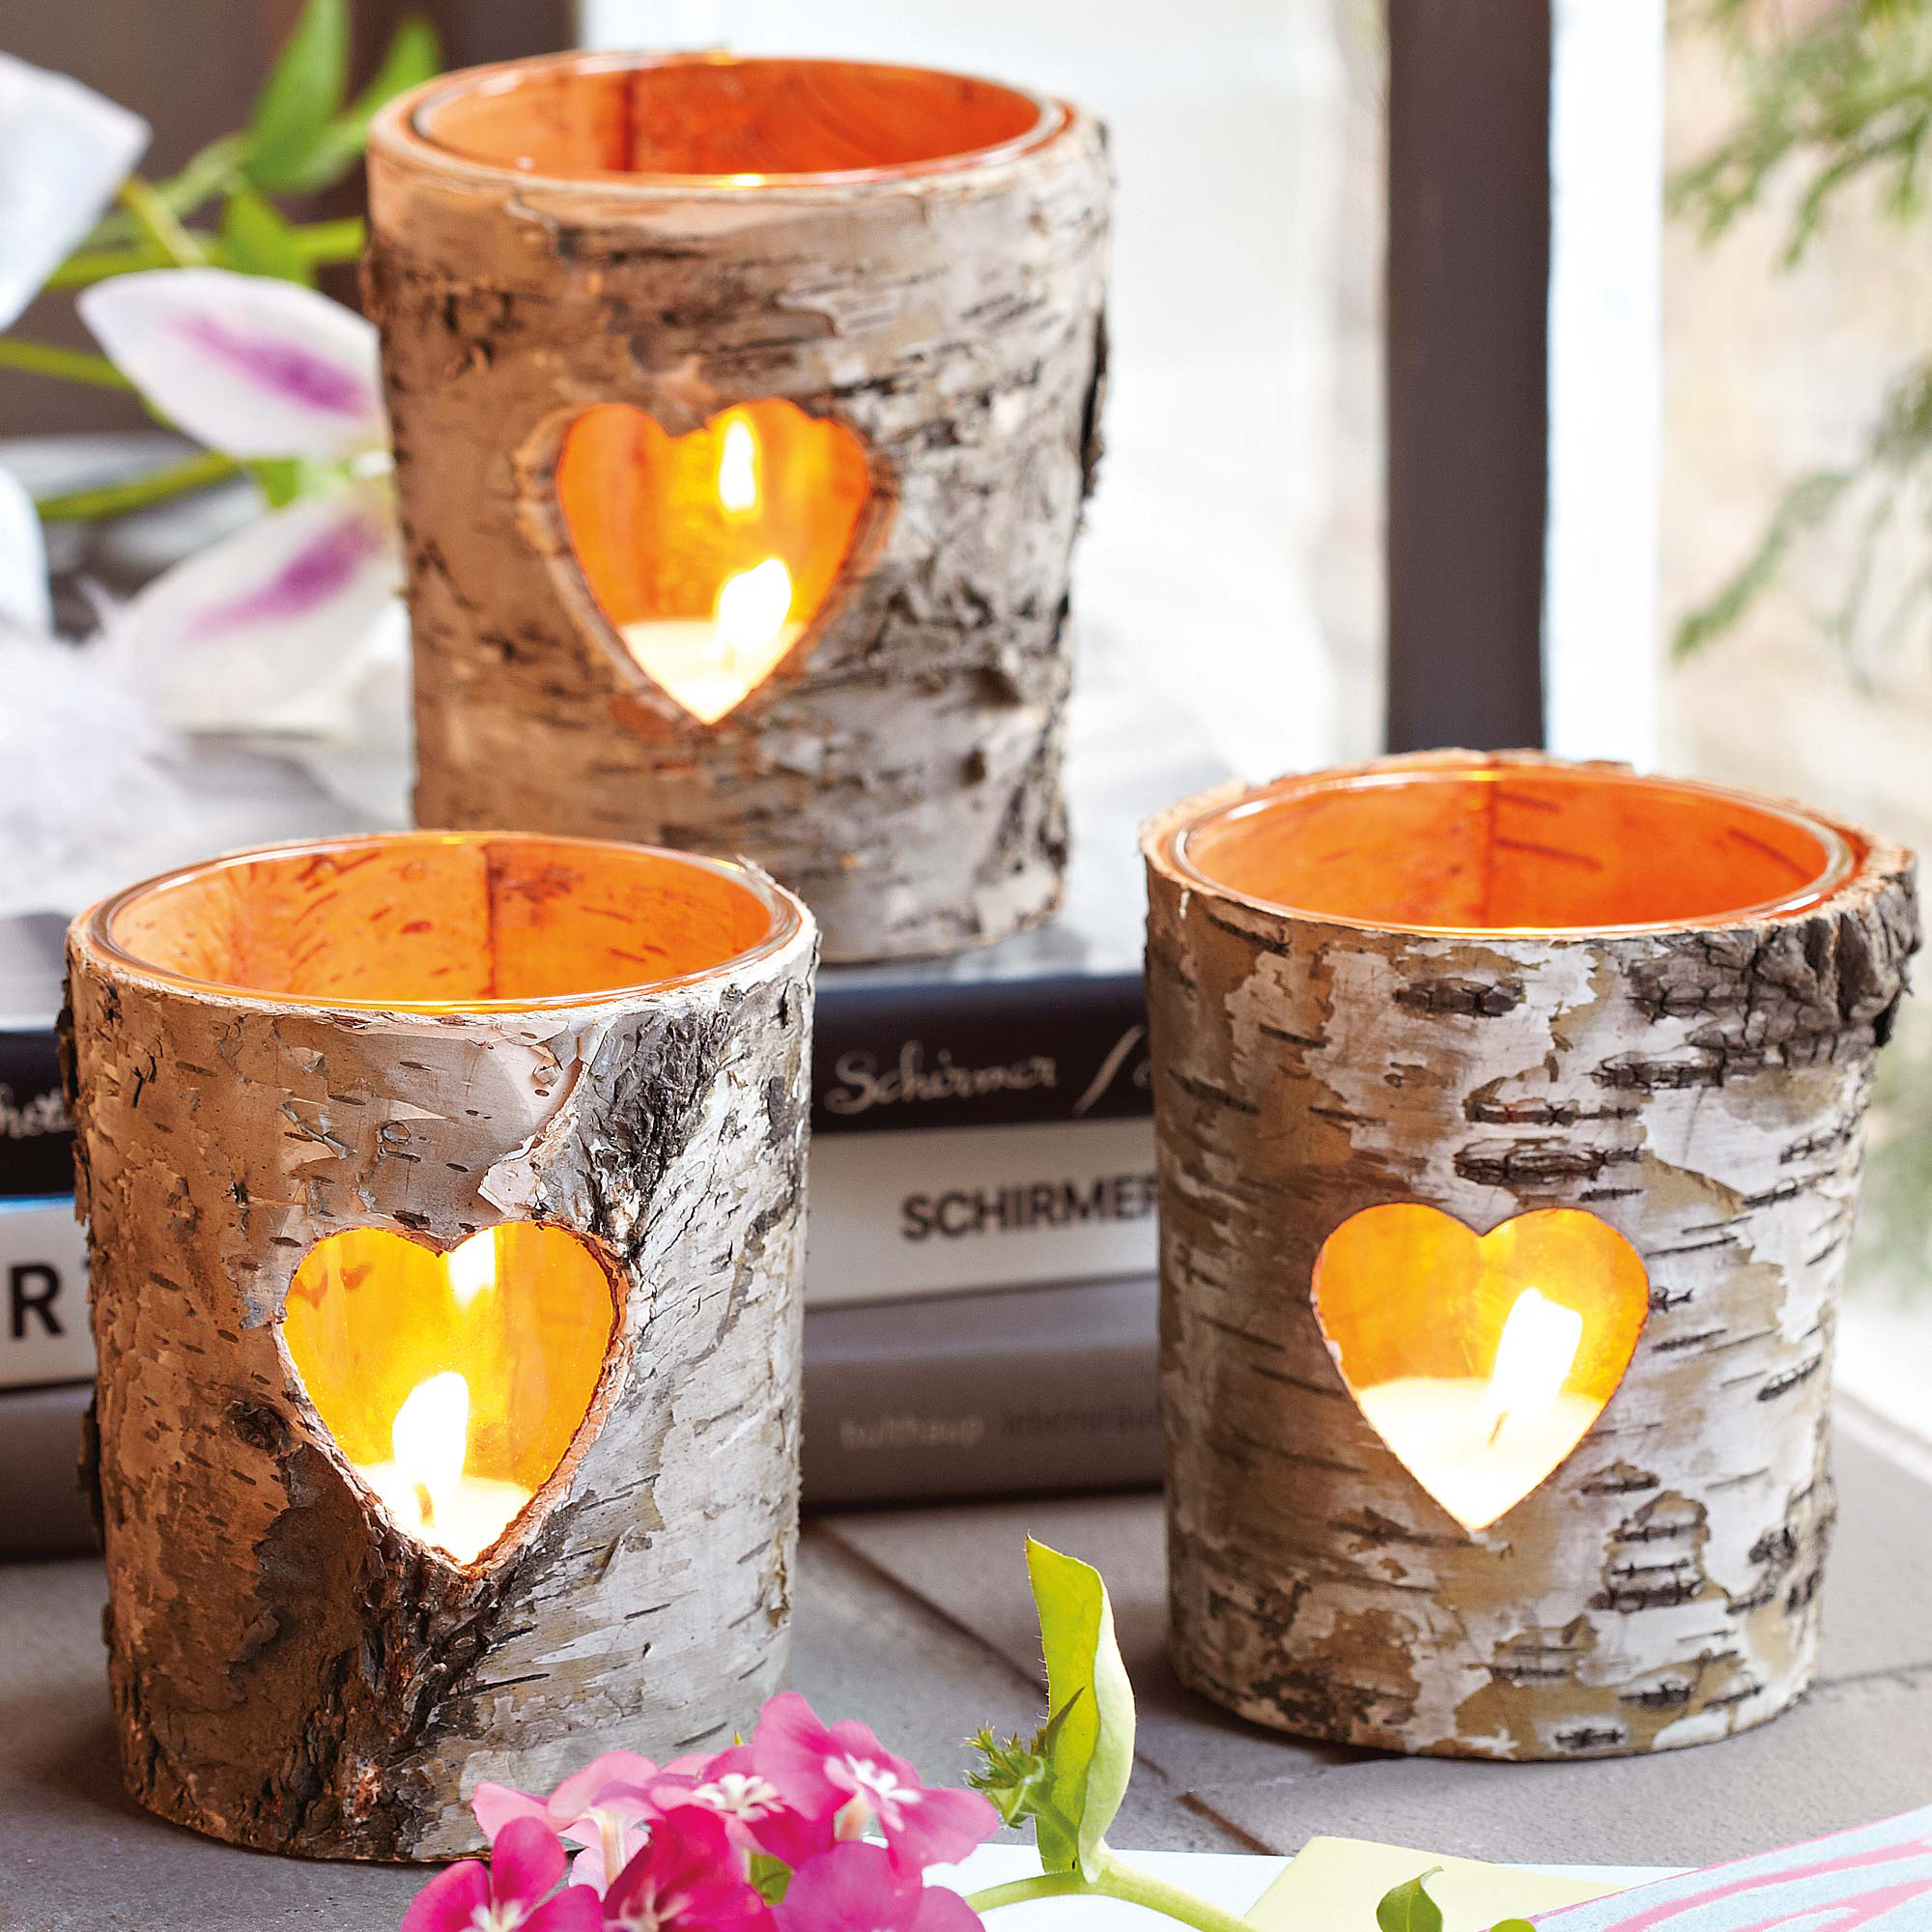 birch-bark-crafts-and-decorating-ideas-with-rustic-flair-furniture-photo-diy-candle-holder-design-ideas